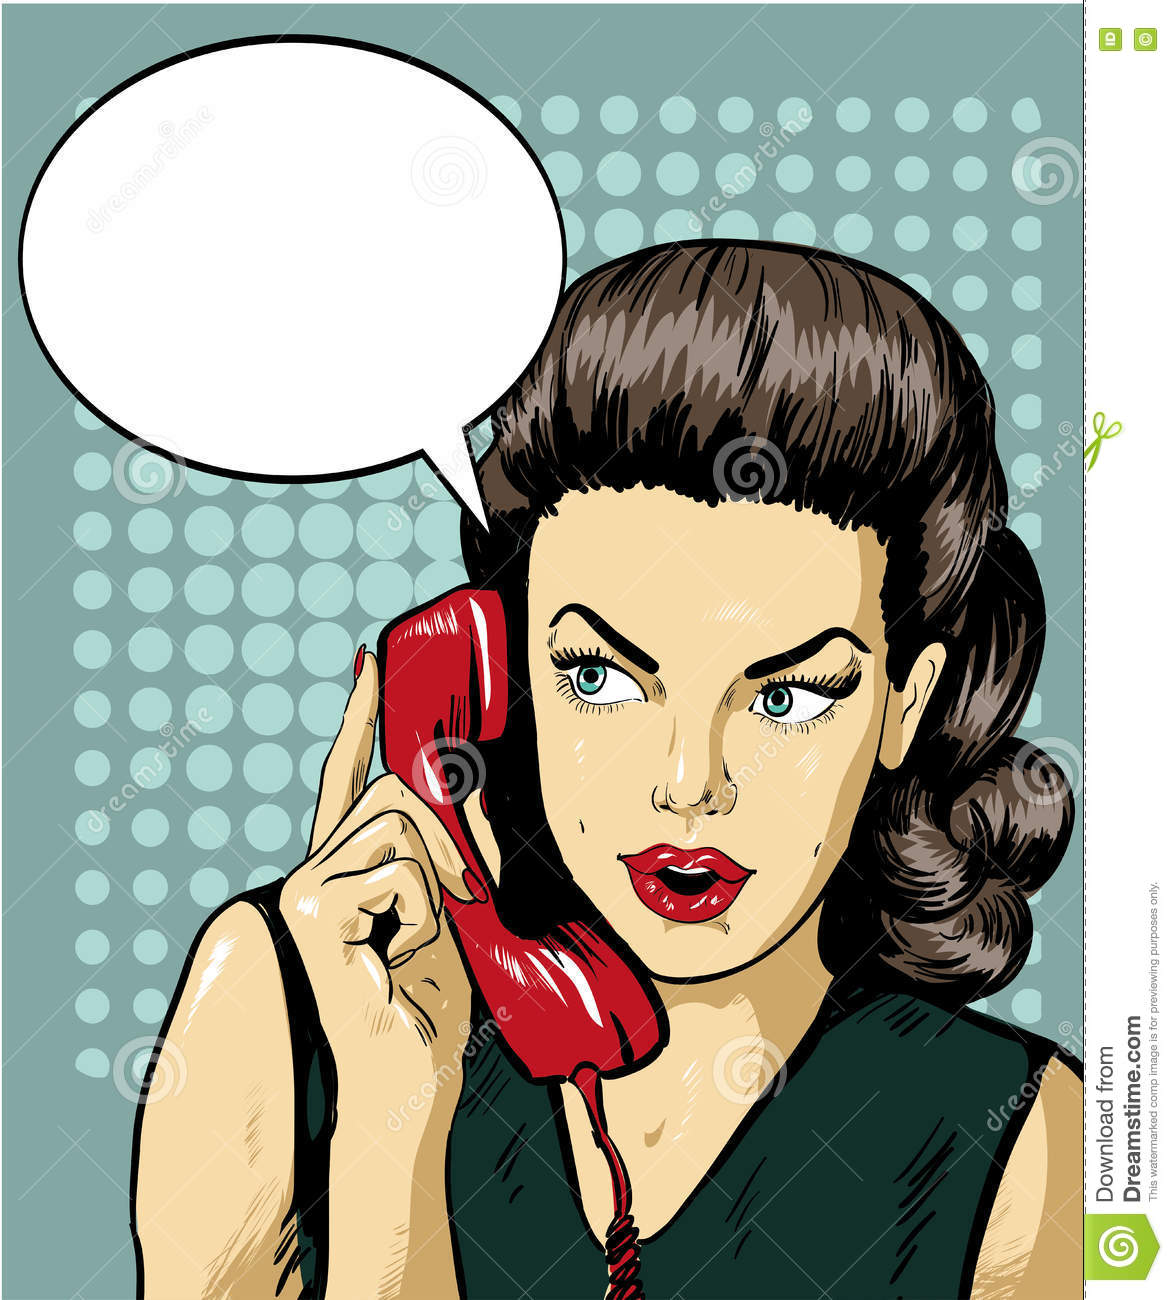 woman talking by phone with speech bubble vector illustration in retro comic pop art style. Black Bedroom Furniture Sets. Home Design Ideas